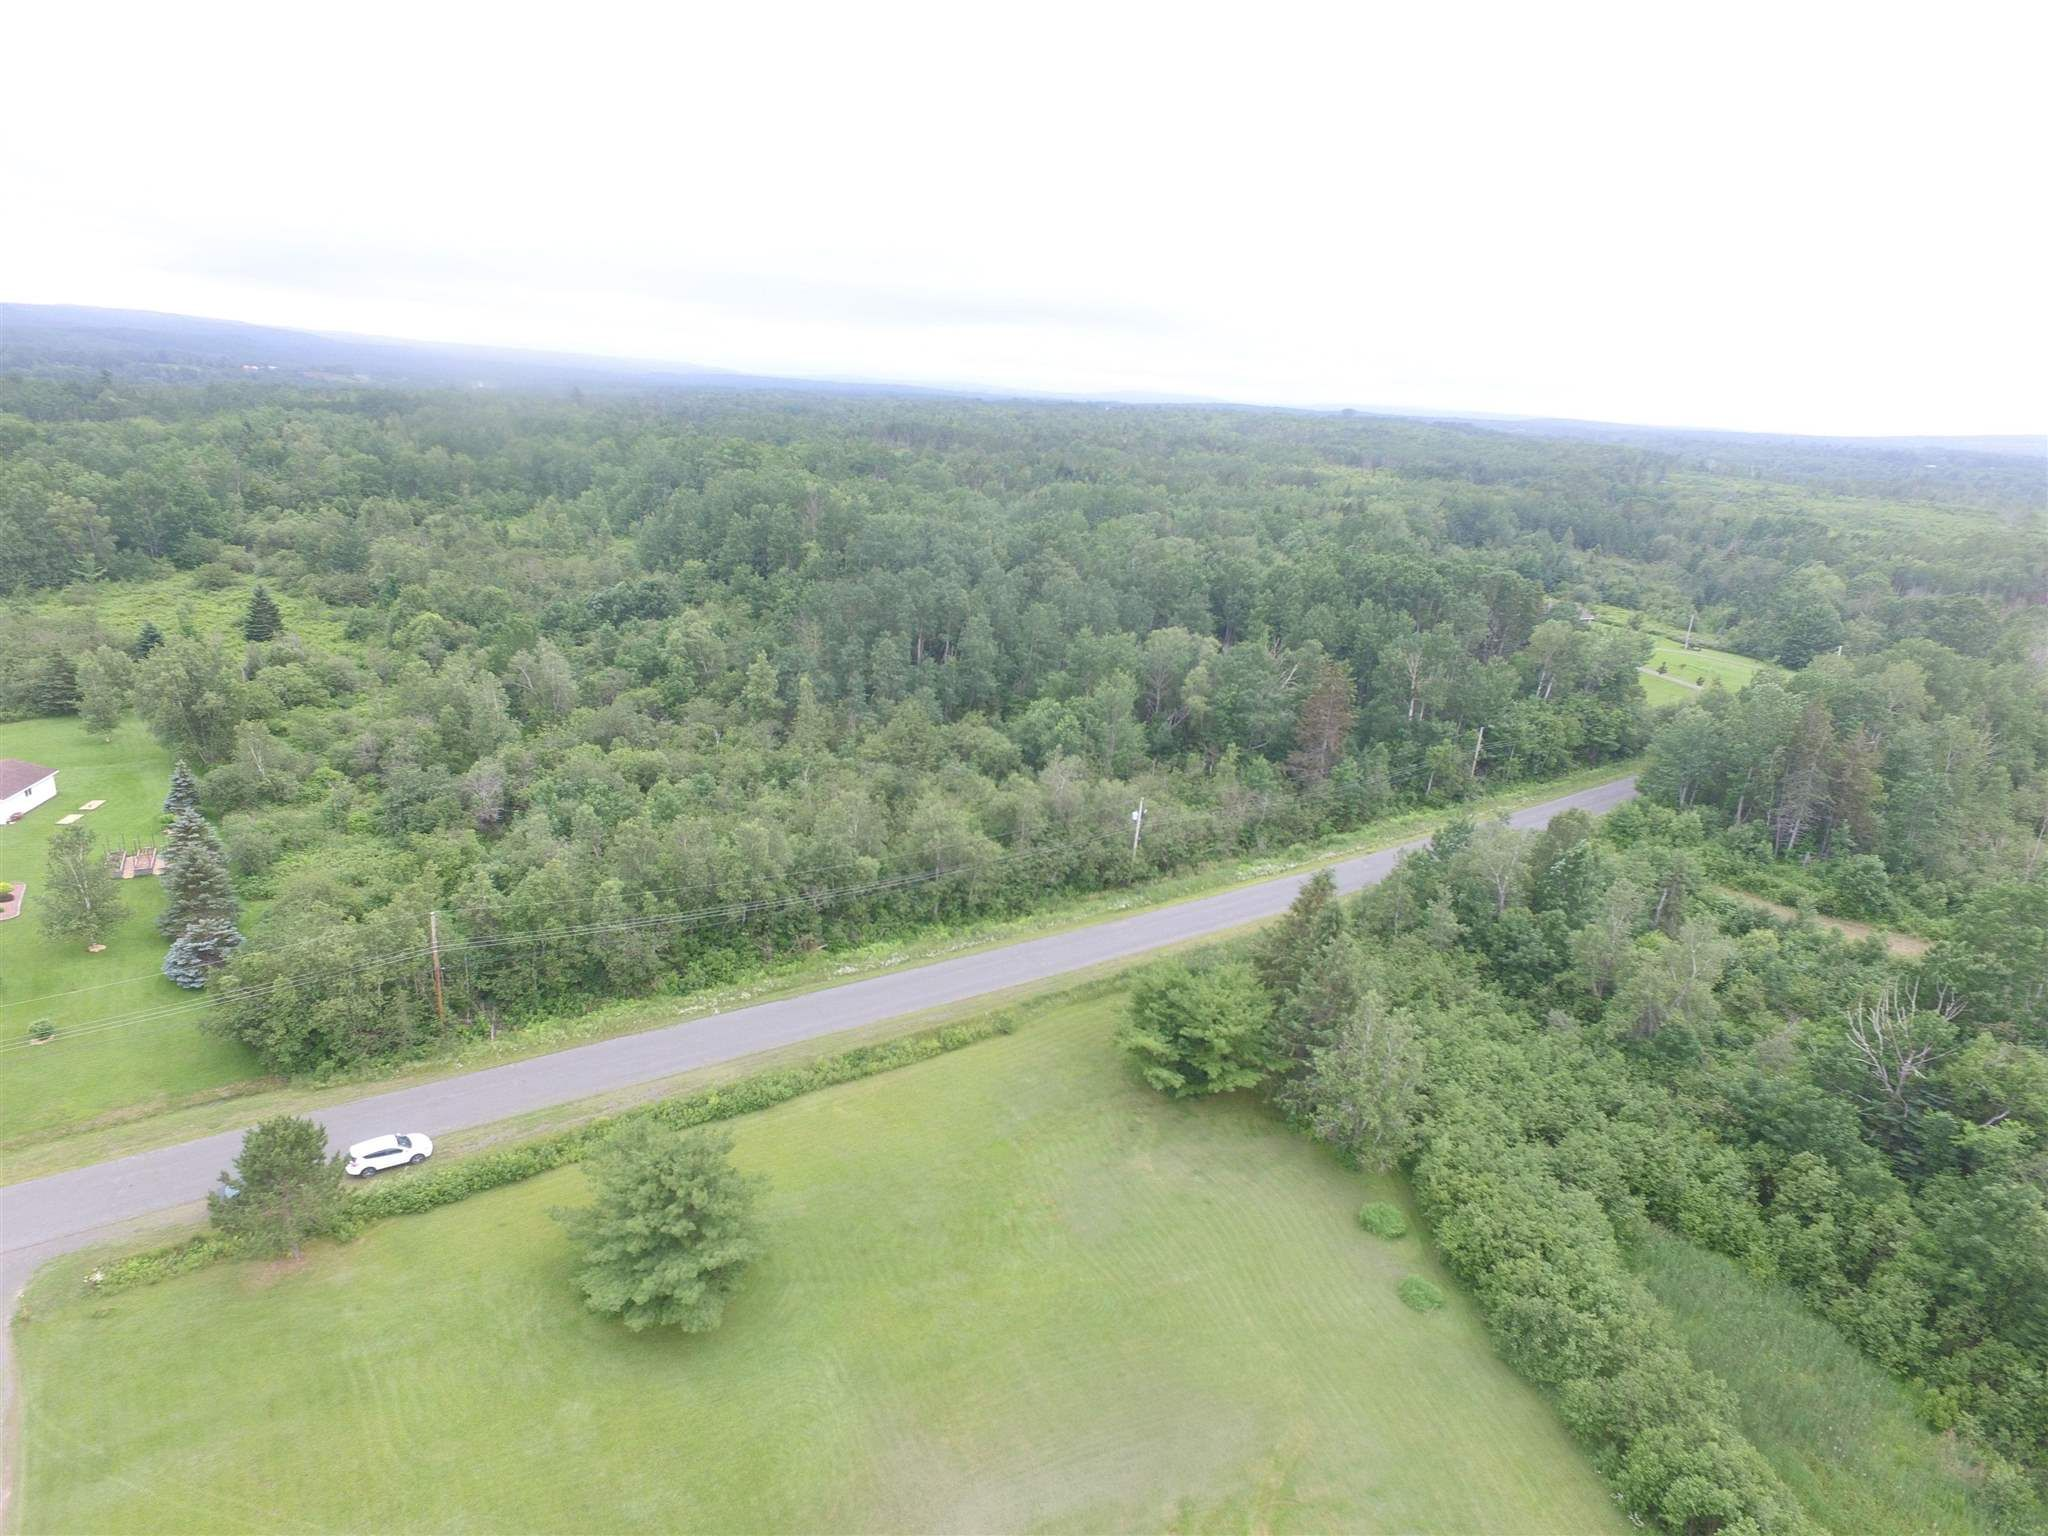 Main Photo: Lot 14A Quarry Brook Drive in Durham: 108-Rural Pictou County Vacant Land for sale (Northern Region)  : MLS®# 202117812